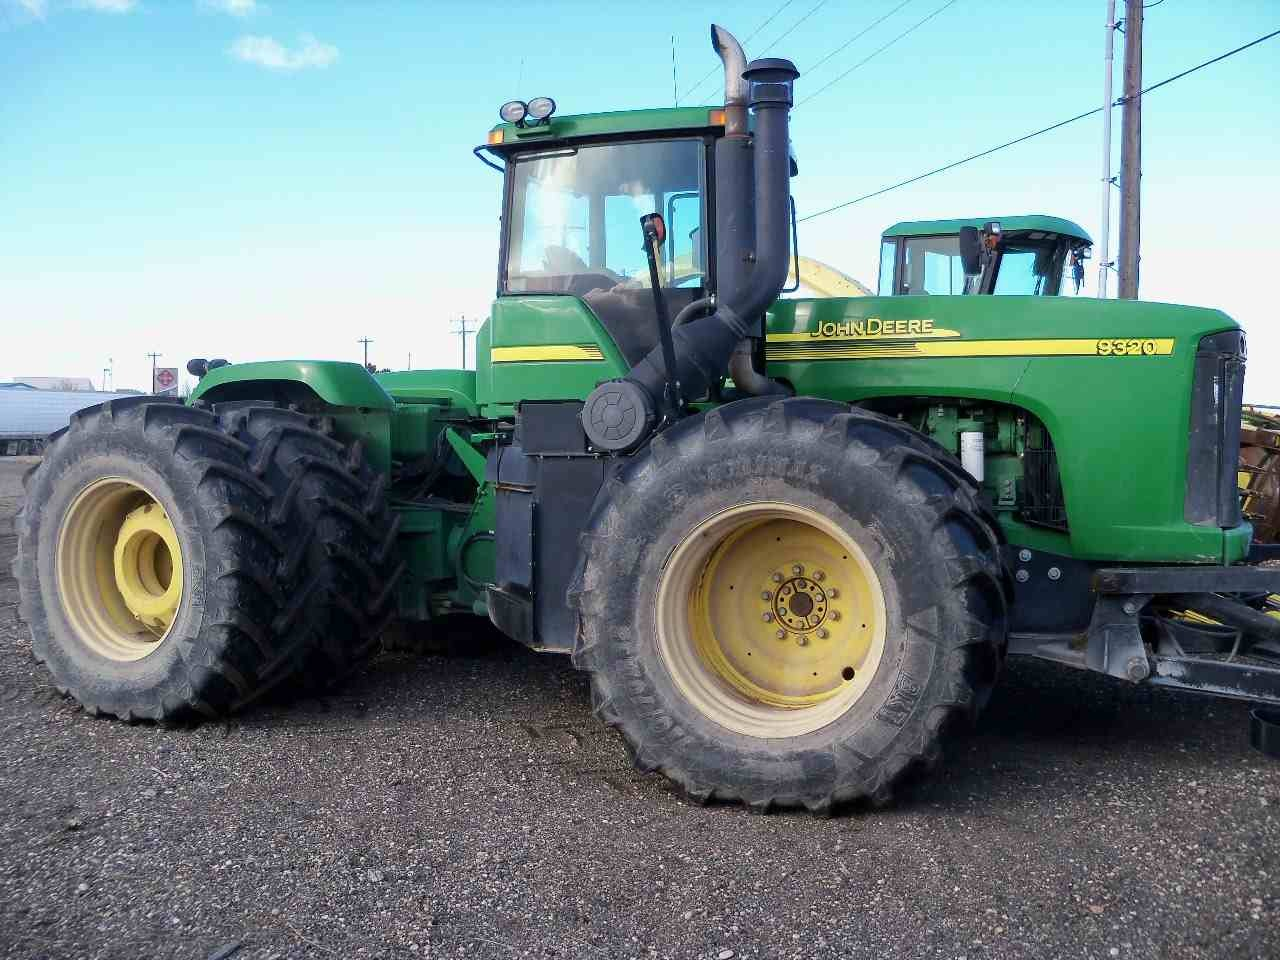 John Deere 9320 Tractor w/ Silage Blade - 2005 - Berry ...